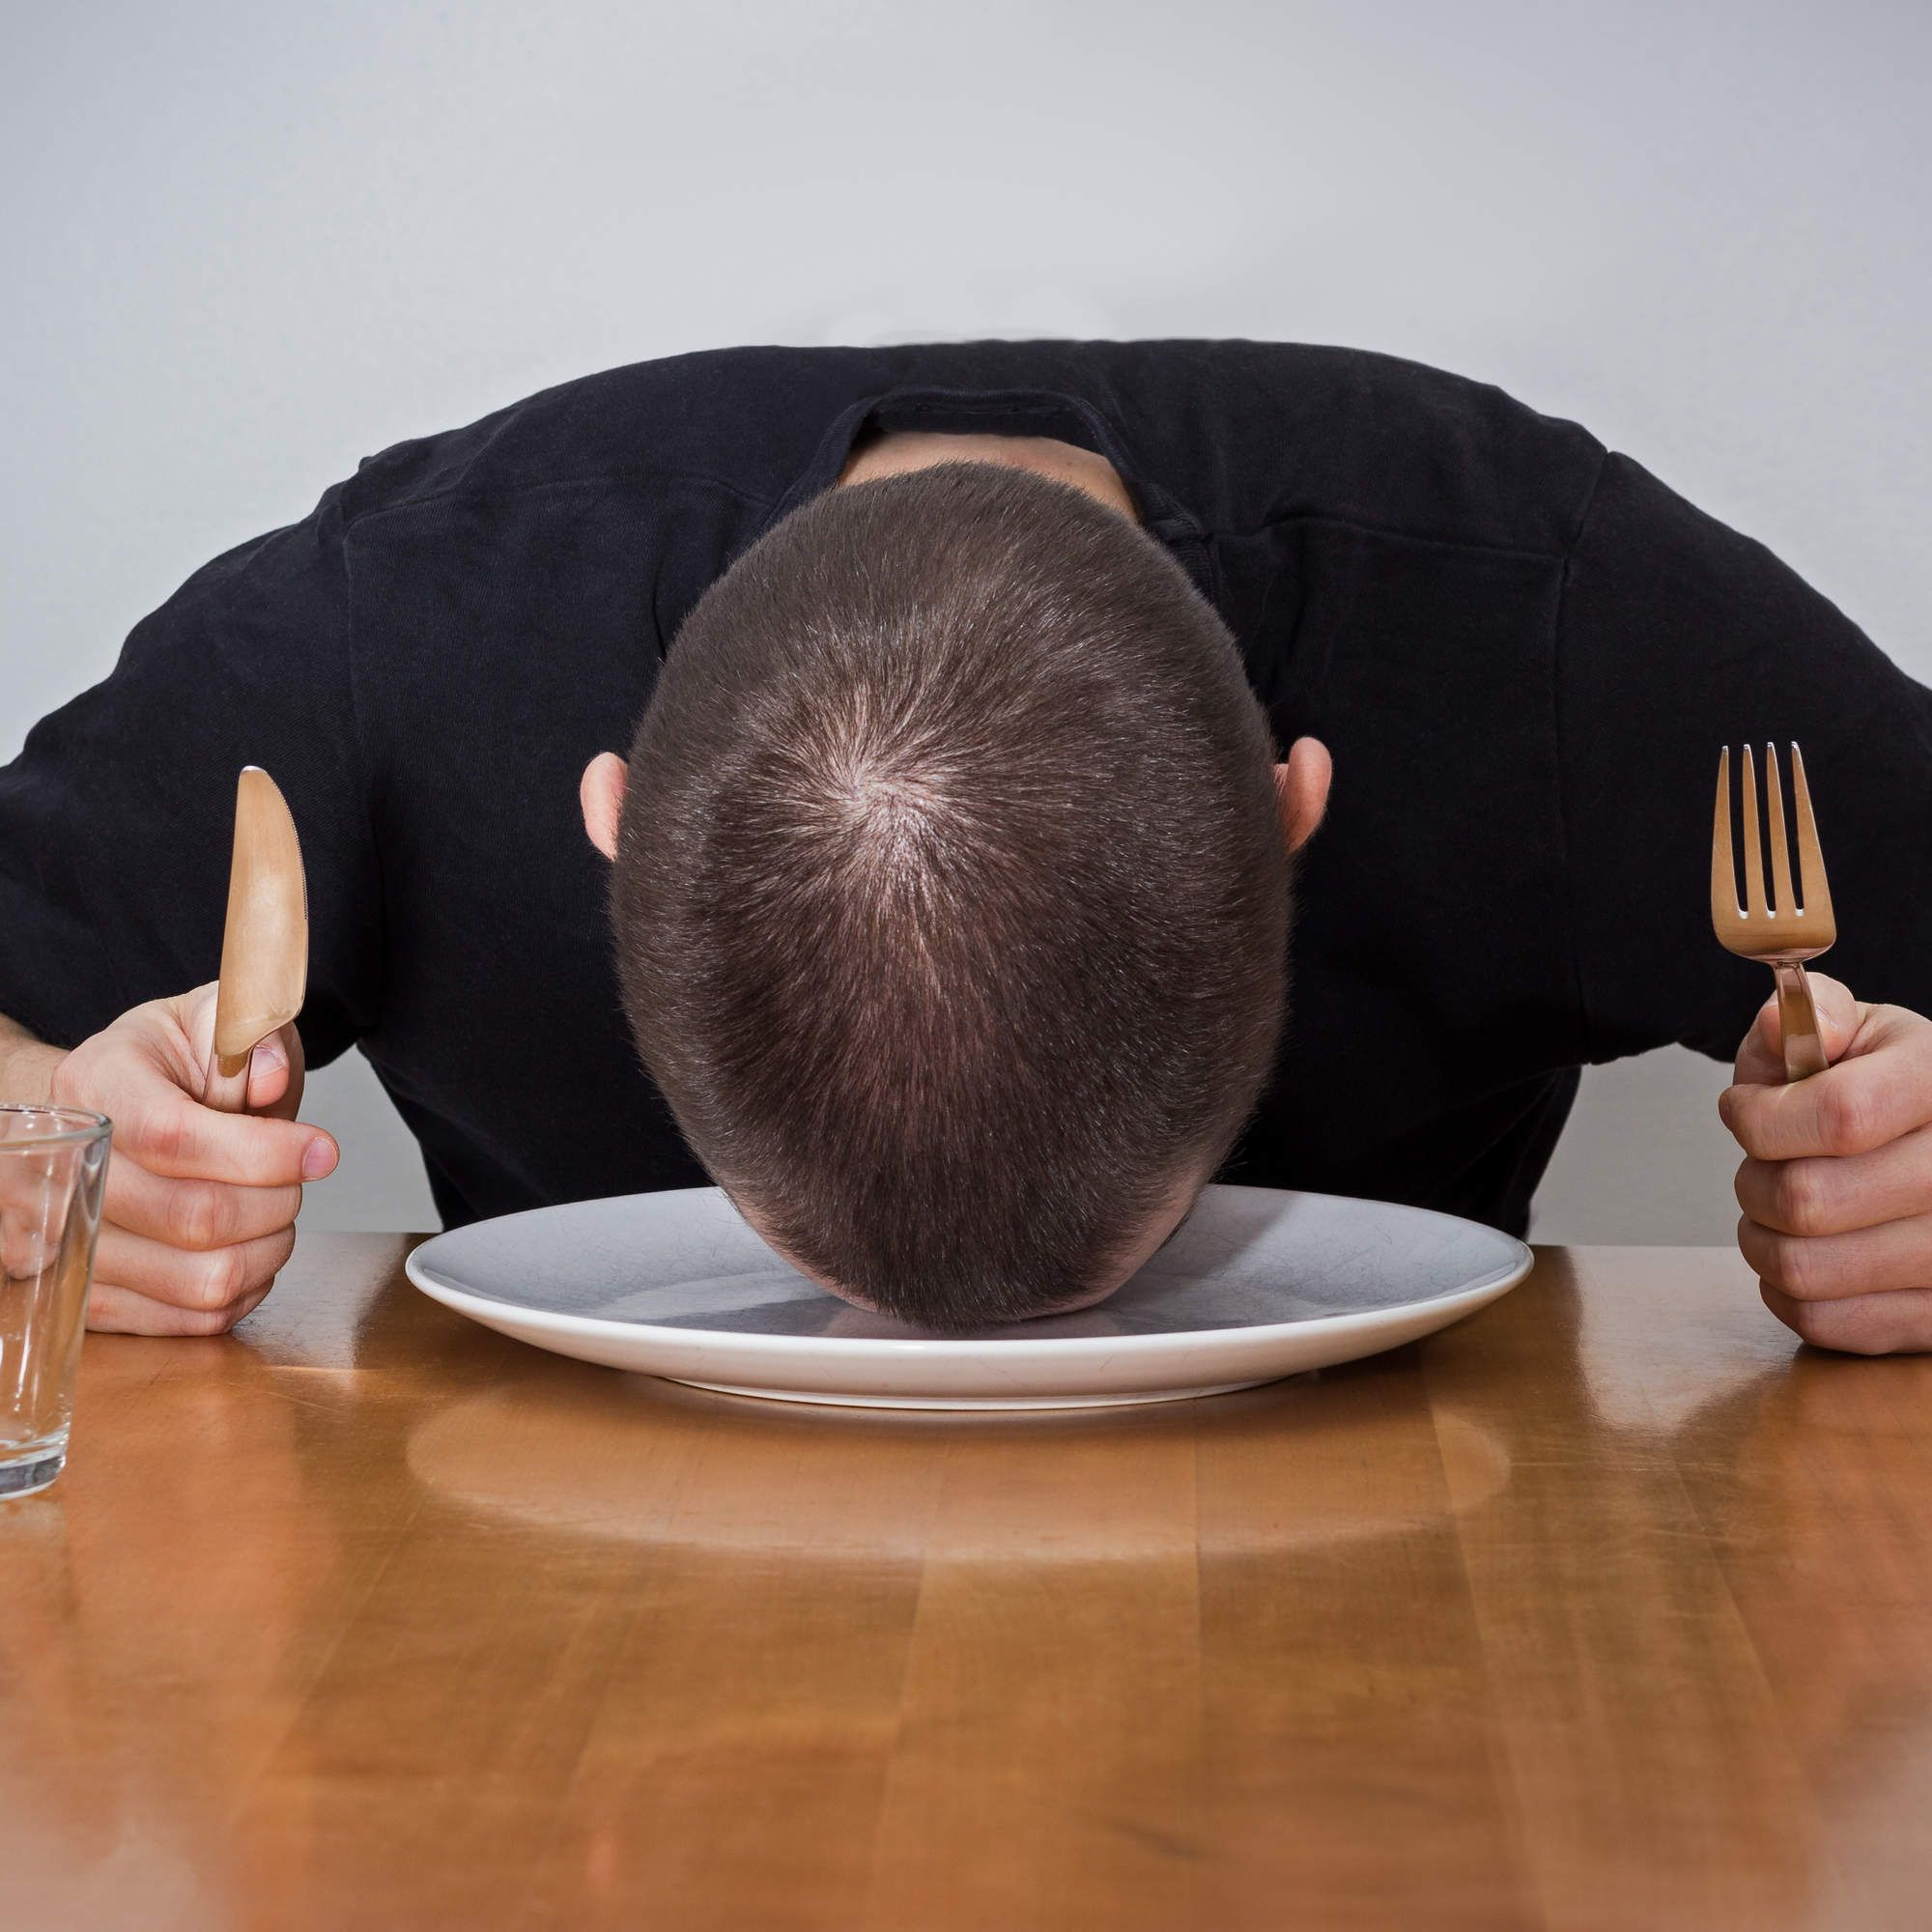 10 Simple Reasons Why You Feel Hungry All The Time Hungry All The Time Sleepy After Eating Chronic Fatigue